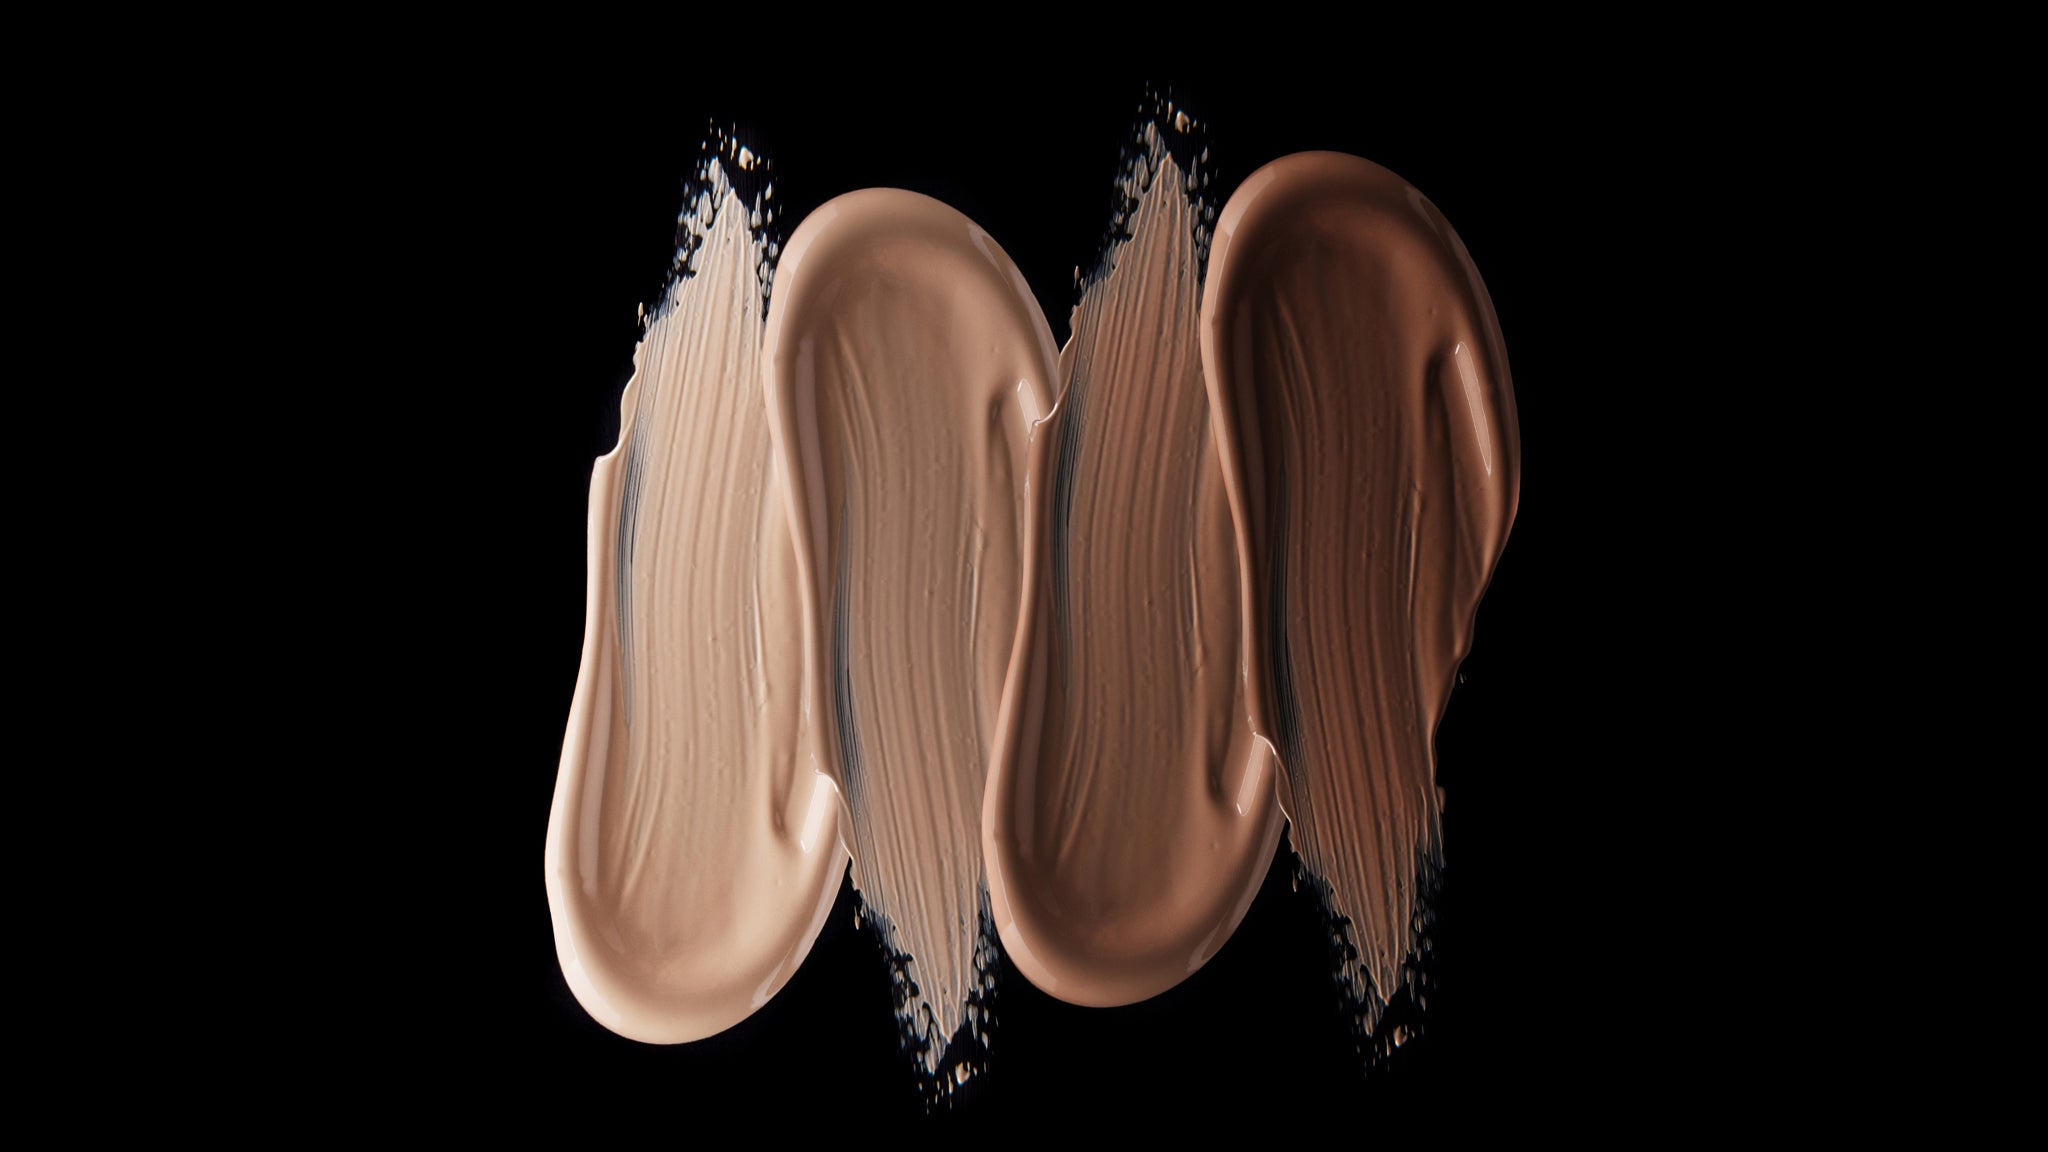 Best makeup foundation for a diverse range of skin tones